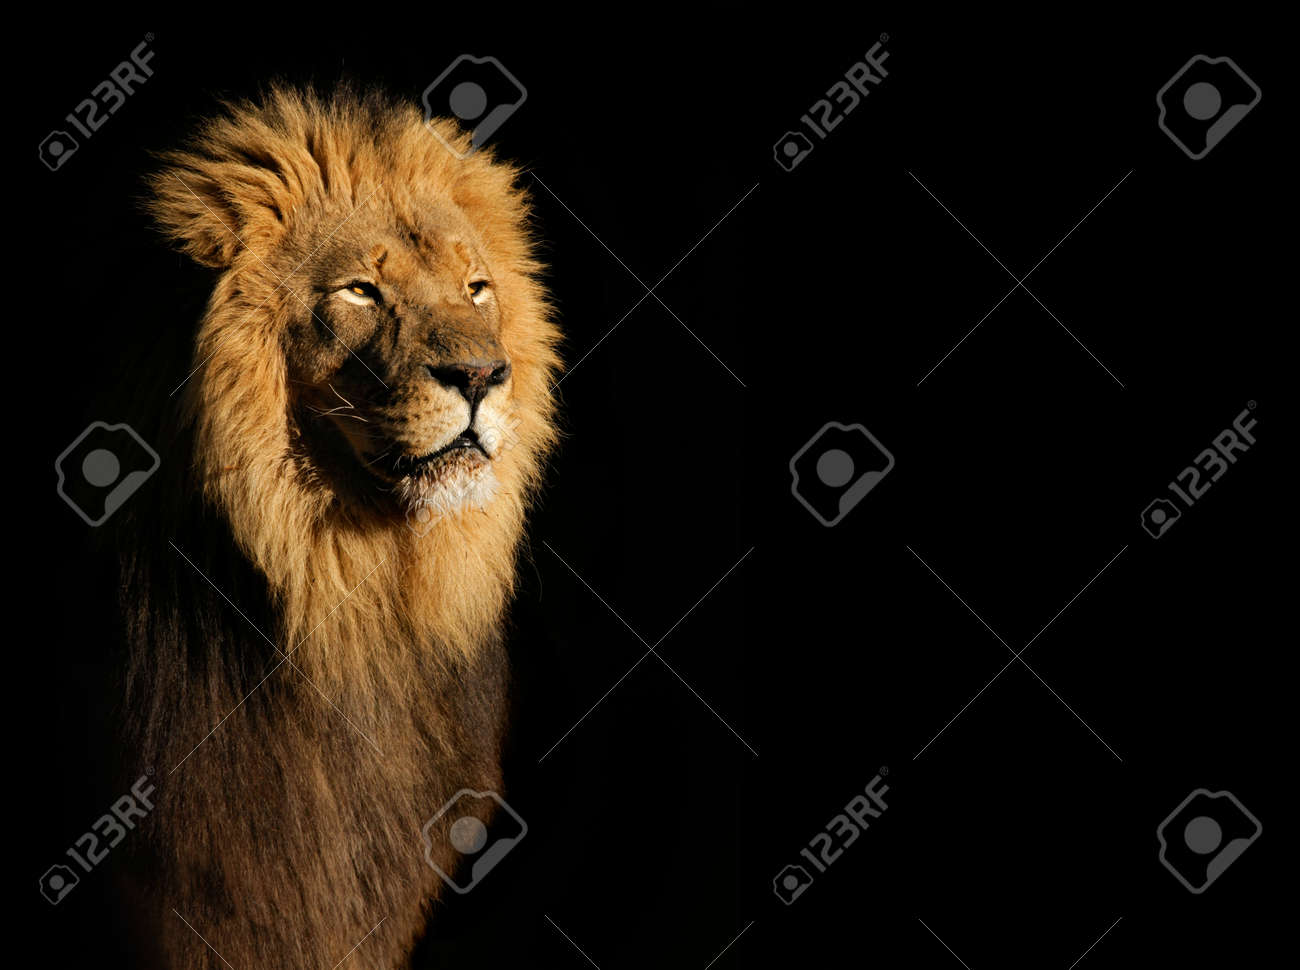 Portrait of a big male African lion Panthera leo against a black background, South Africa - 52518101